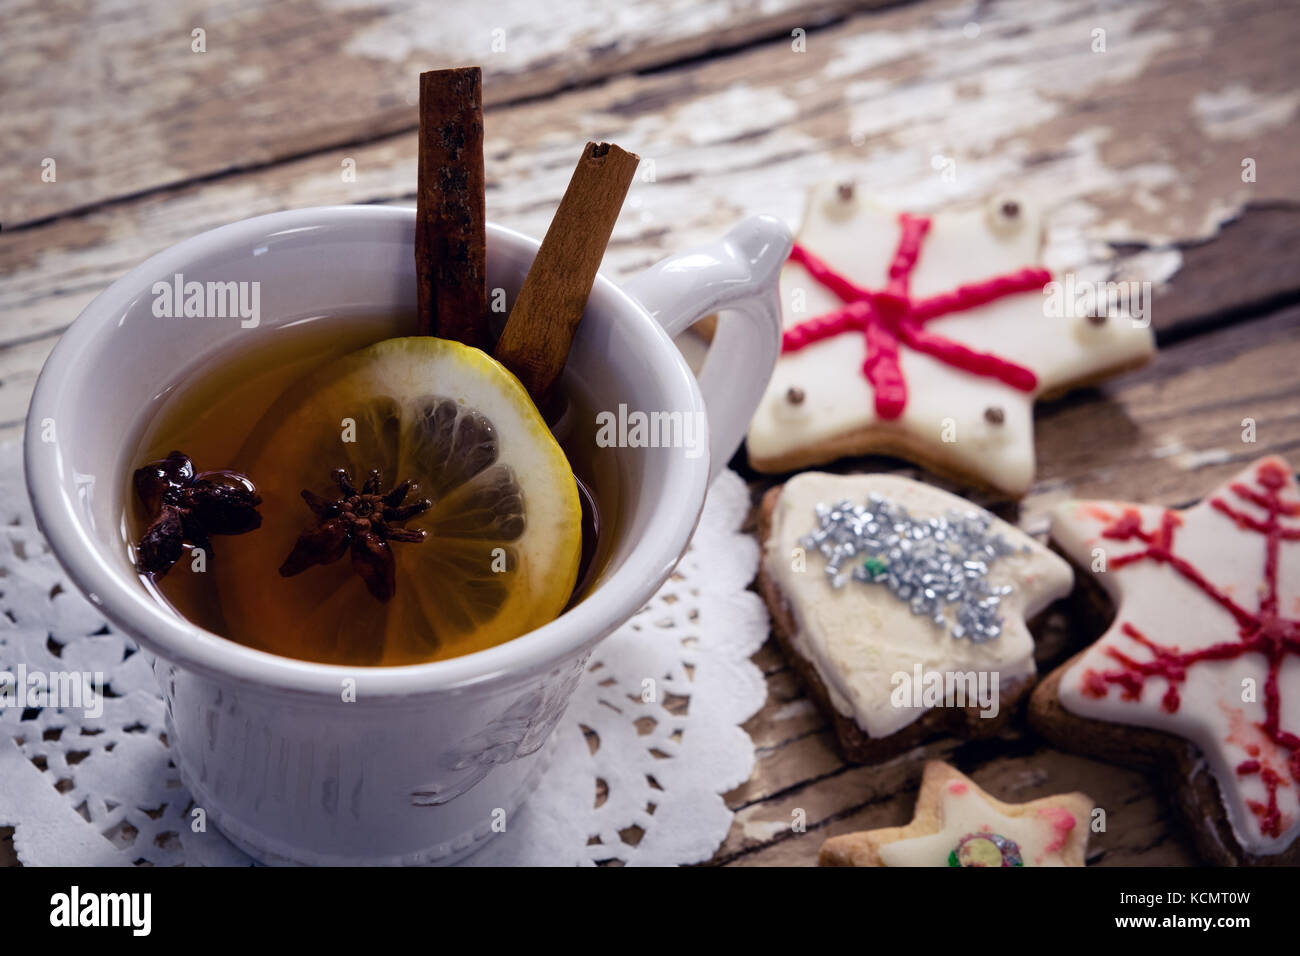 Close-up of tea, spices and cookies on wooden plank - Stock Image